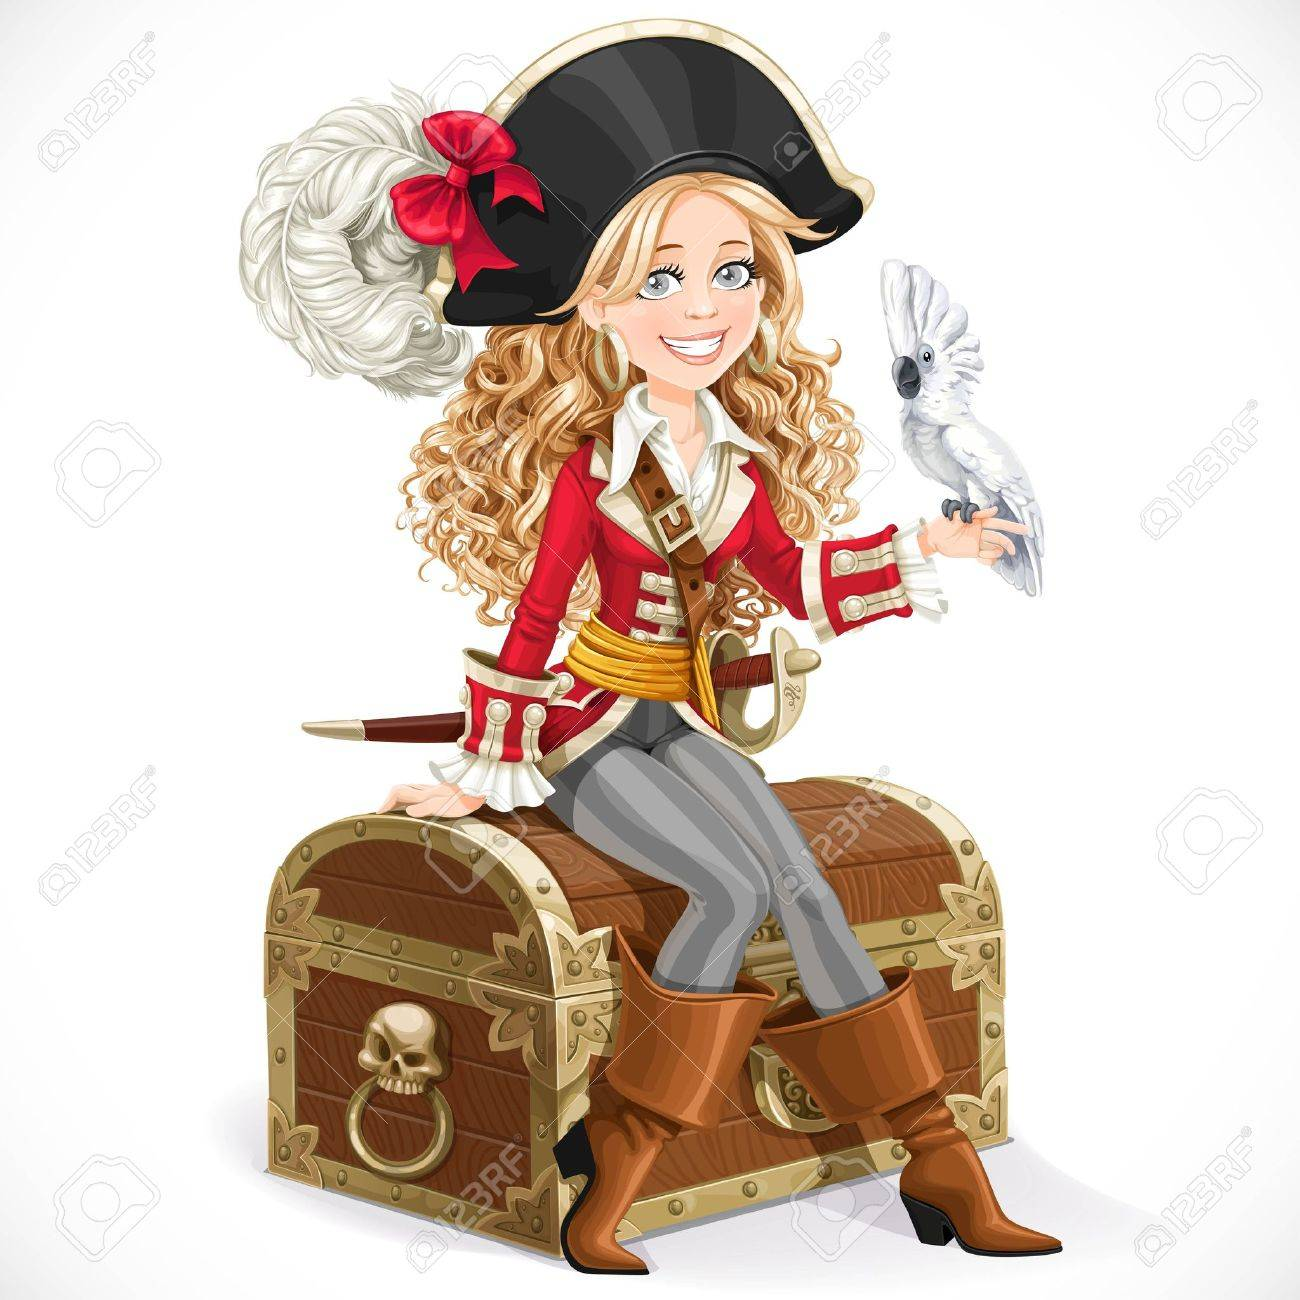 Pirate girl images 98